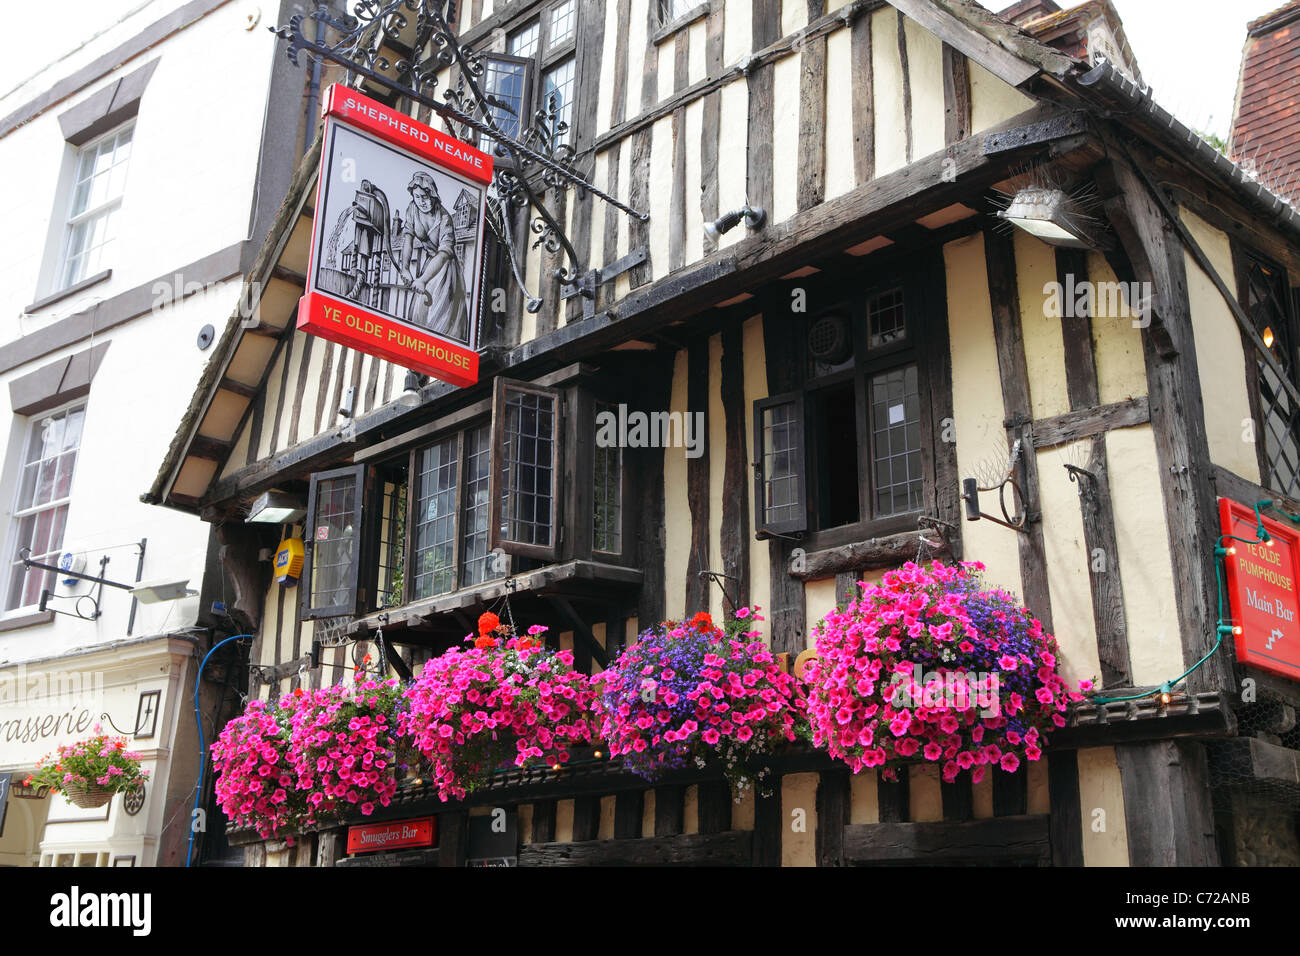 Hastings UK. Ye Olde PumpHouse Pub in George Street, Hastings Old Town, East Sussex, England, UK, GB - Stock Image